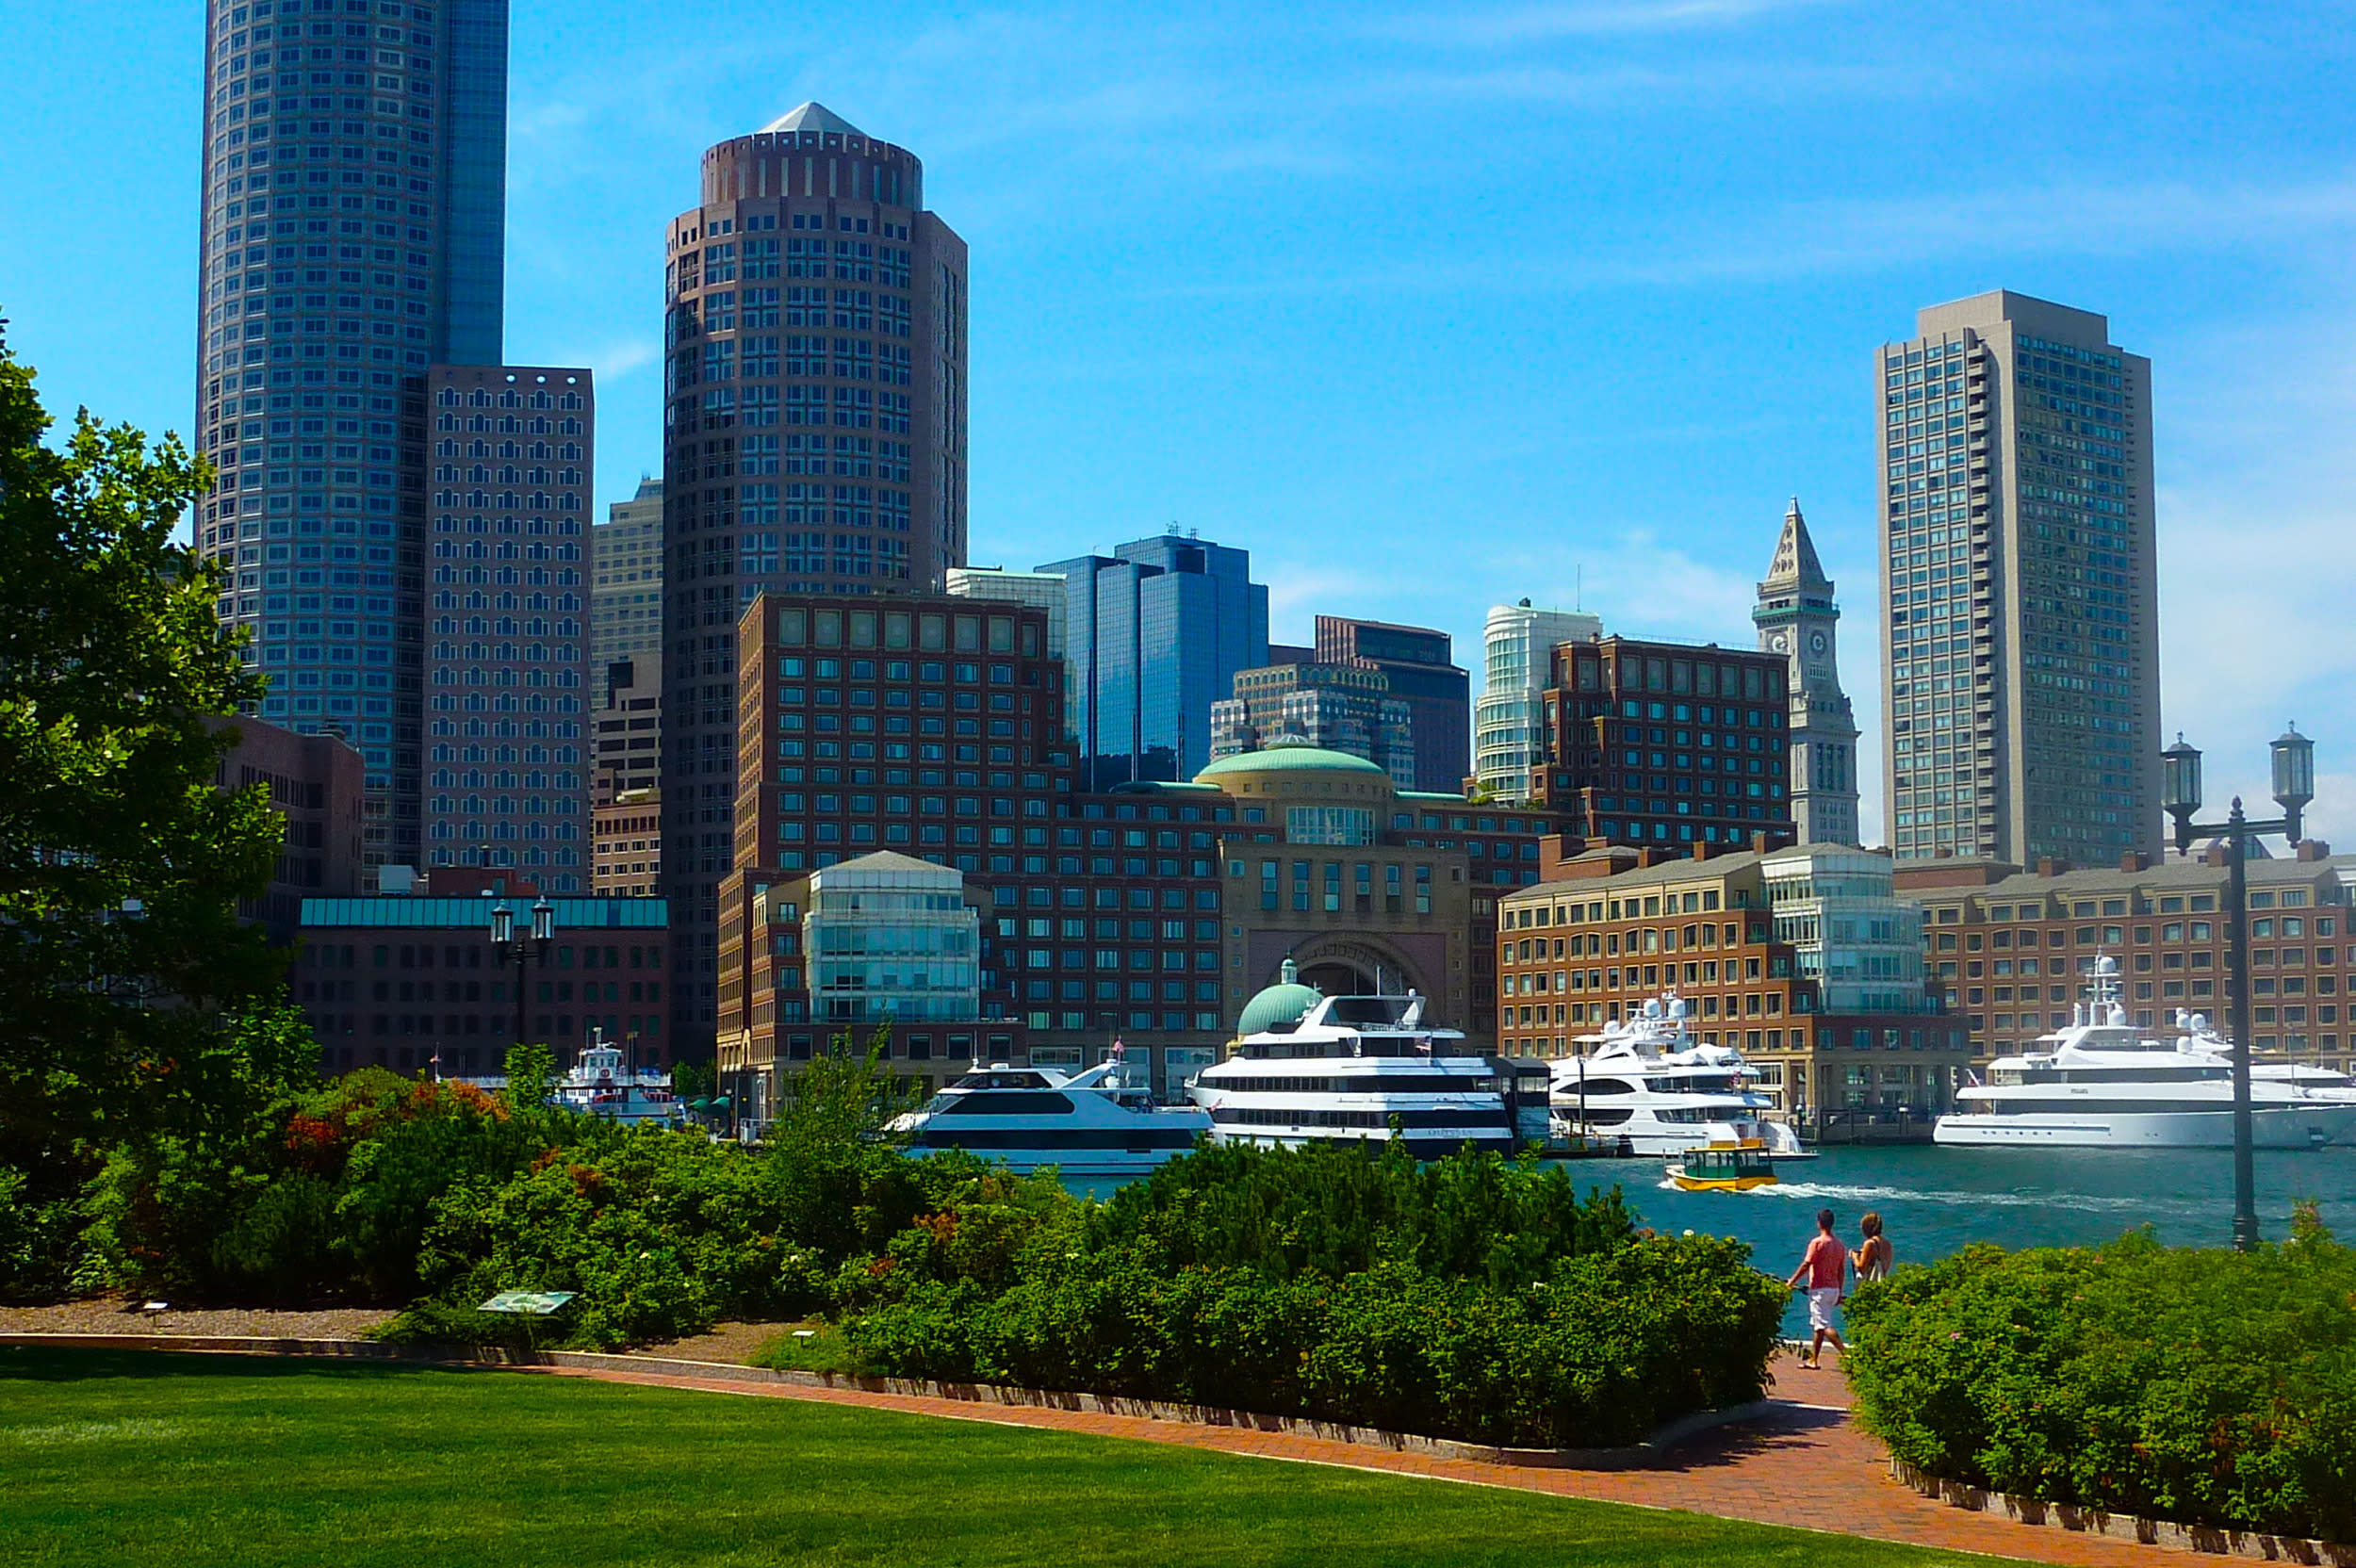 """June is the perfect month to get out and about in America's most walkable city. Boston has an abundance of green parks and open spaces where you can enjoy a leisurely stroll or cycle, such as alongside the Charles River or through Boston Common. <strong>Try this:</strong> See where a republic was born as you walk the famous Freedom Trail, a 2.5-mile route that links 16 of the most important heritage sights in the city, including the Old State House, Paul Revere's House and the Old North Church. <a href=""""http://wowair.co.uk/?_ga=1.121312712.1195651070.1458678977"""" target=""""_blank"""">WOW Air</a> offers cheap flights from London Gatwick to Boston in June from £169 one way."""